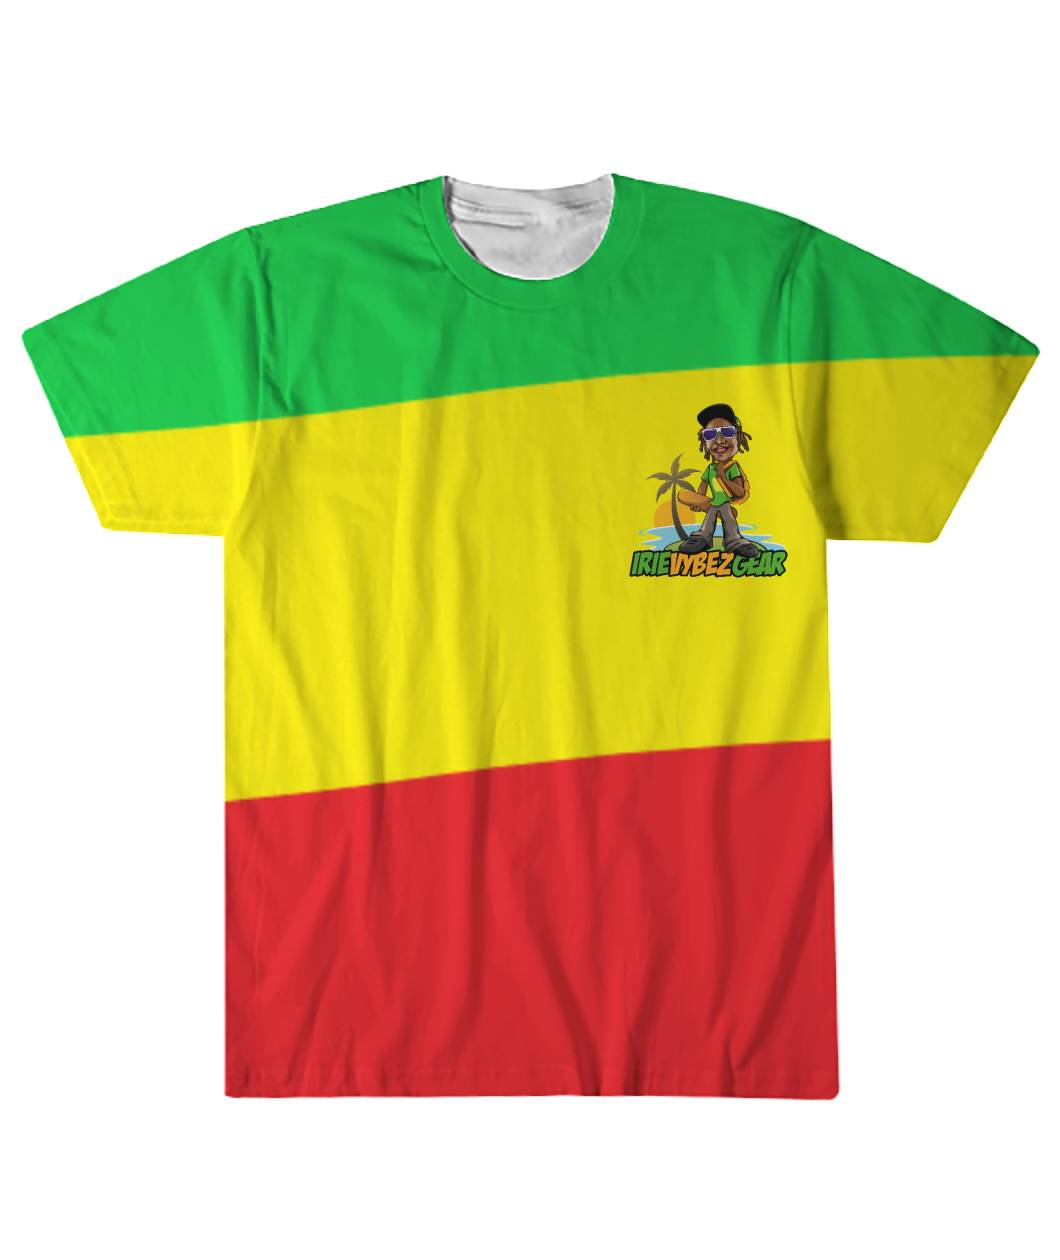 IVG Rasta Logo Sublimation Tee